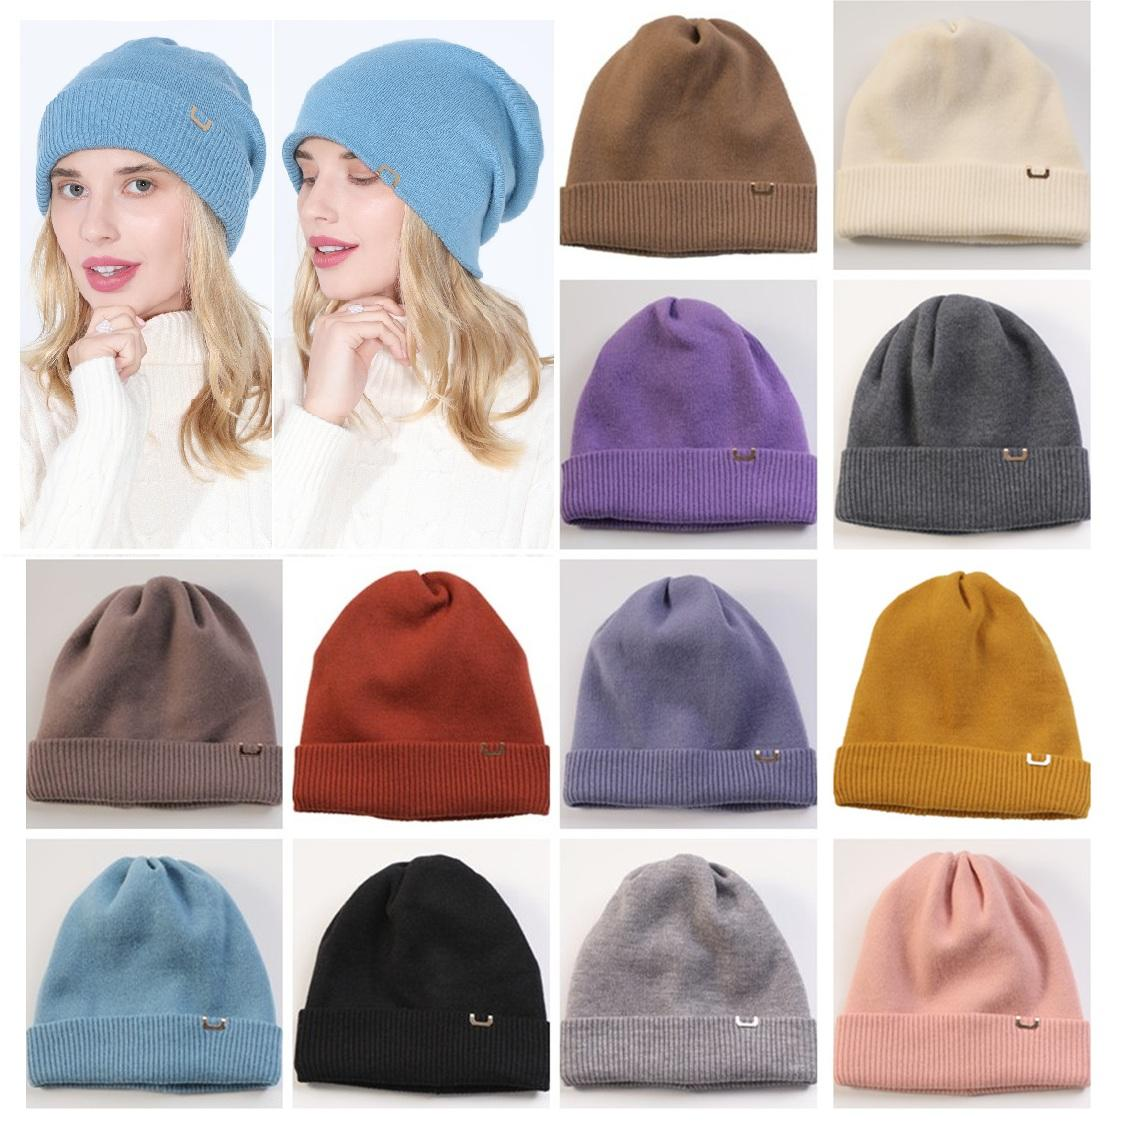 2021 New Knitted hat for female autumn and winter students double thick thermal bonnet hat fashion wool hat